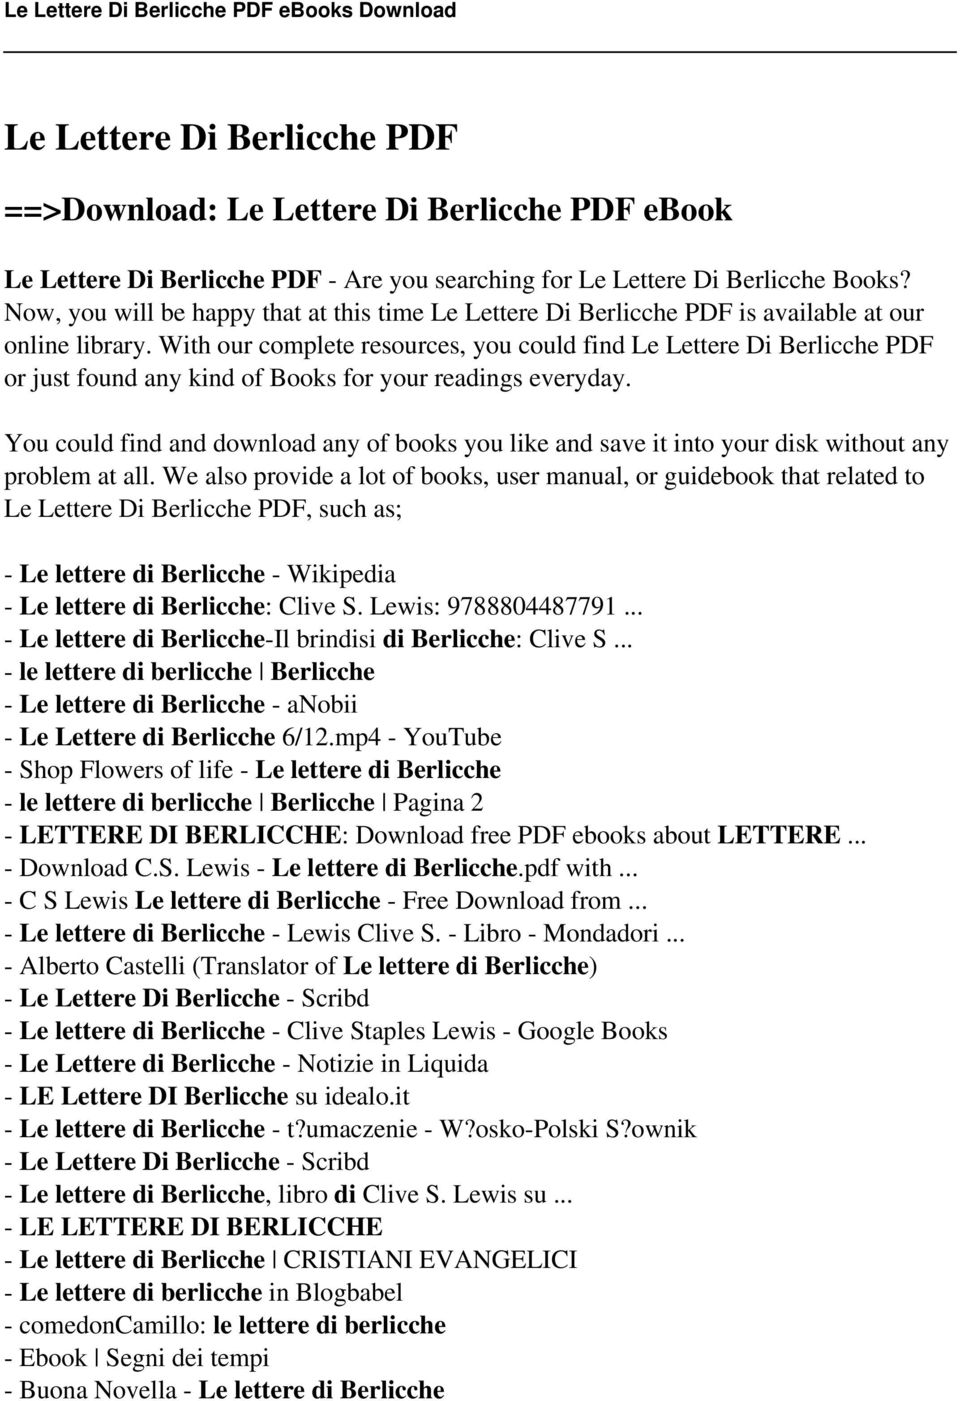 With Ourplete Resources, You Could Find Le Lettere Di Berlicche Pdf Or  Just Found